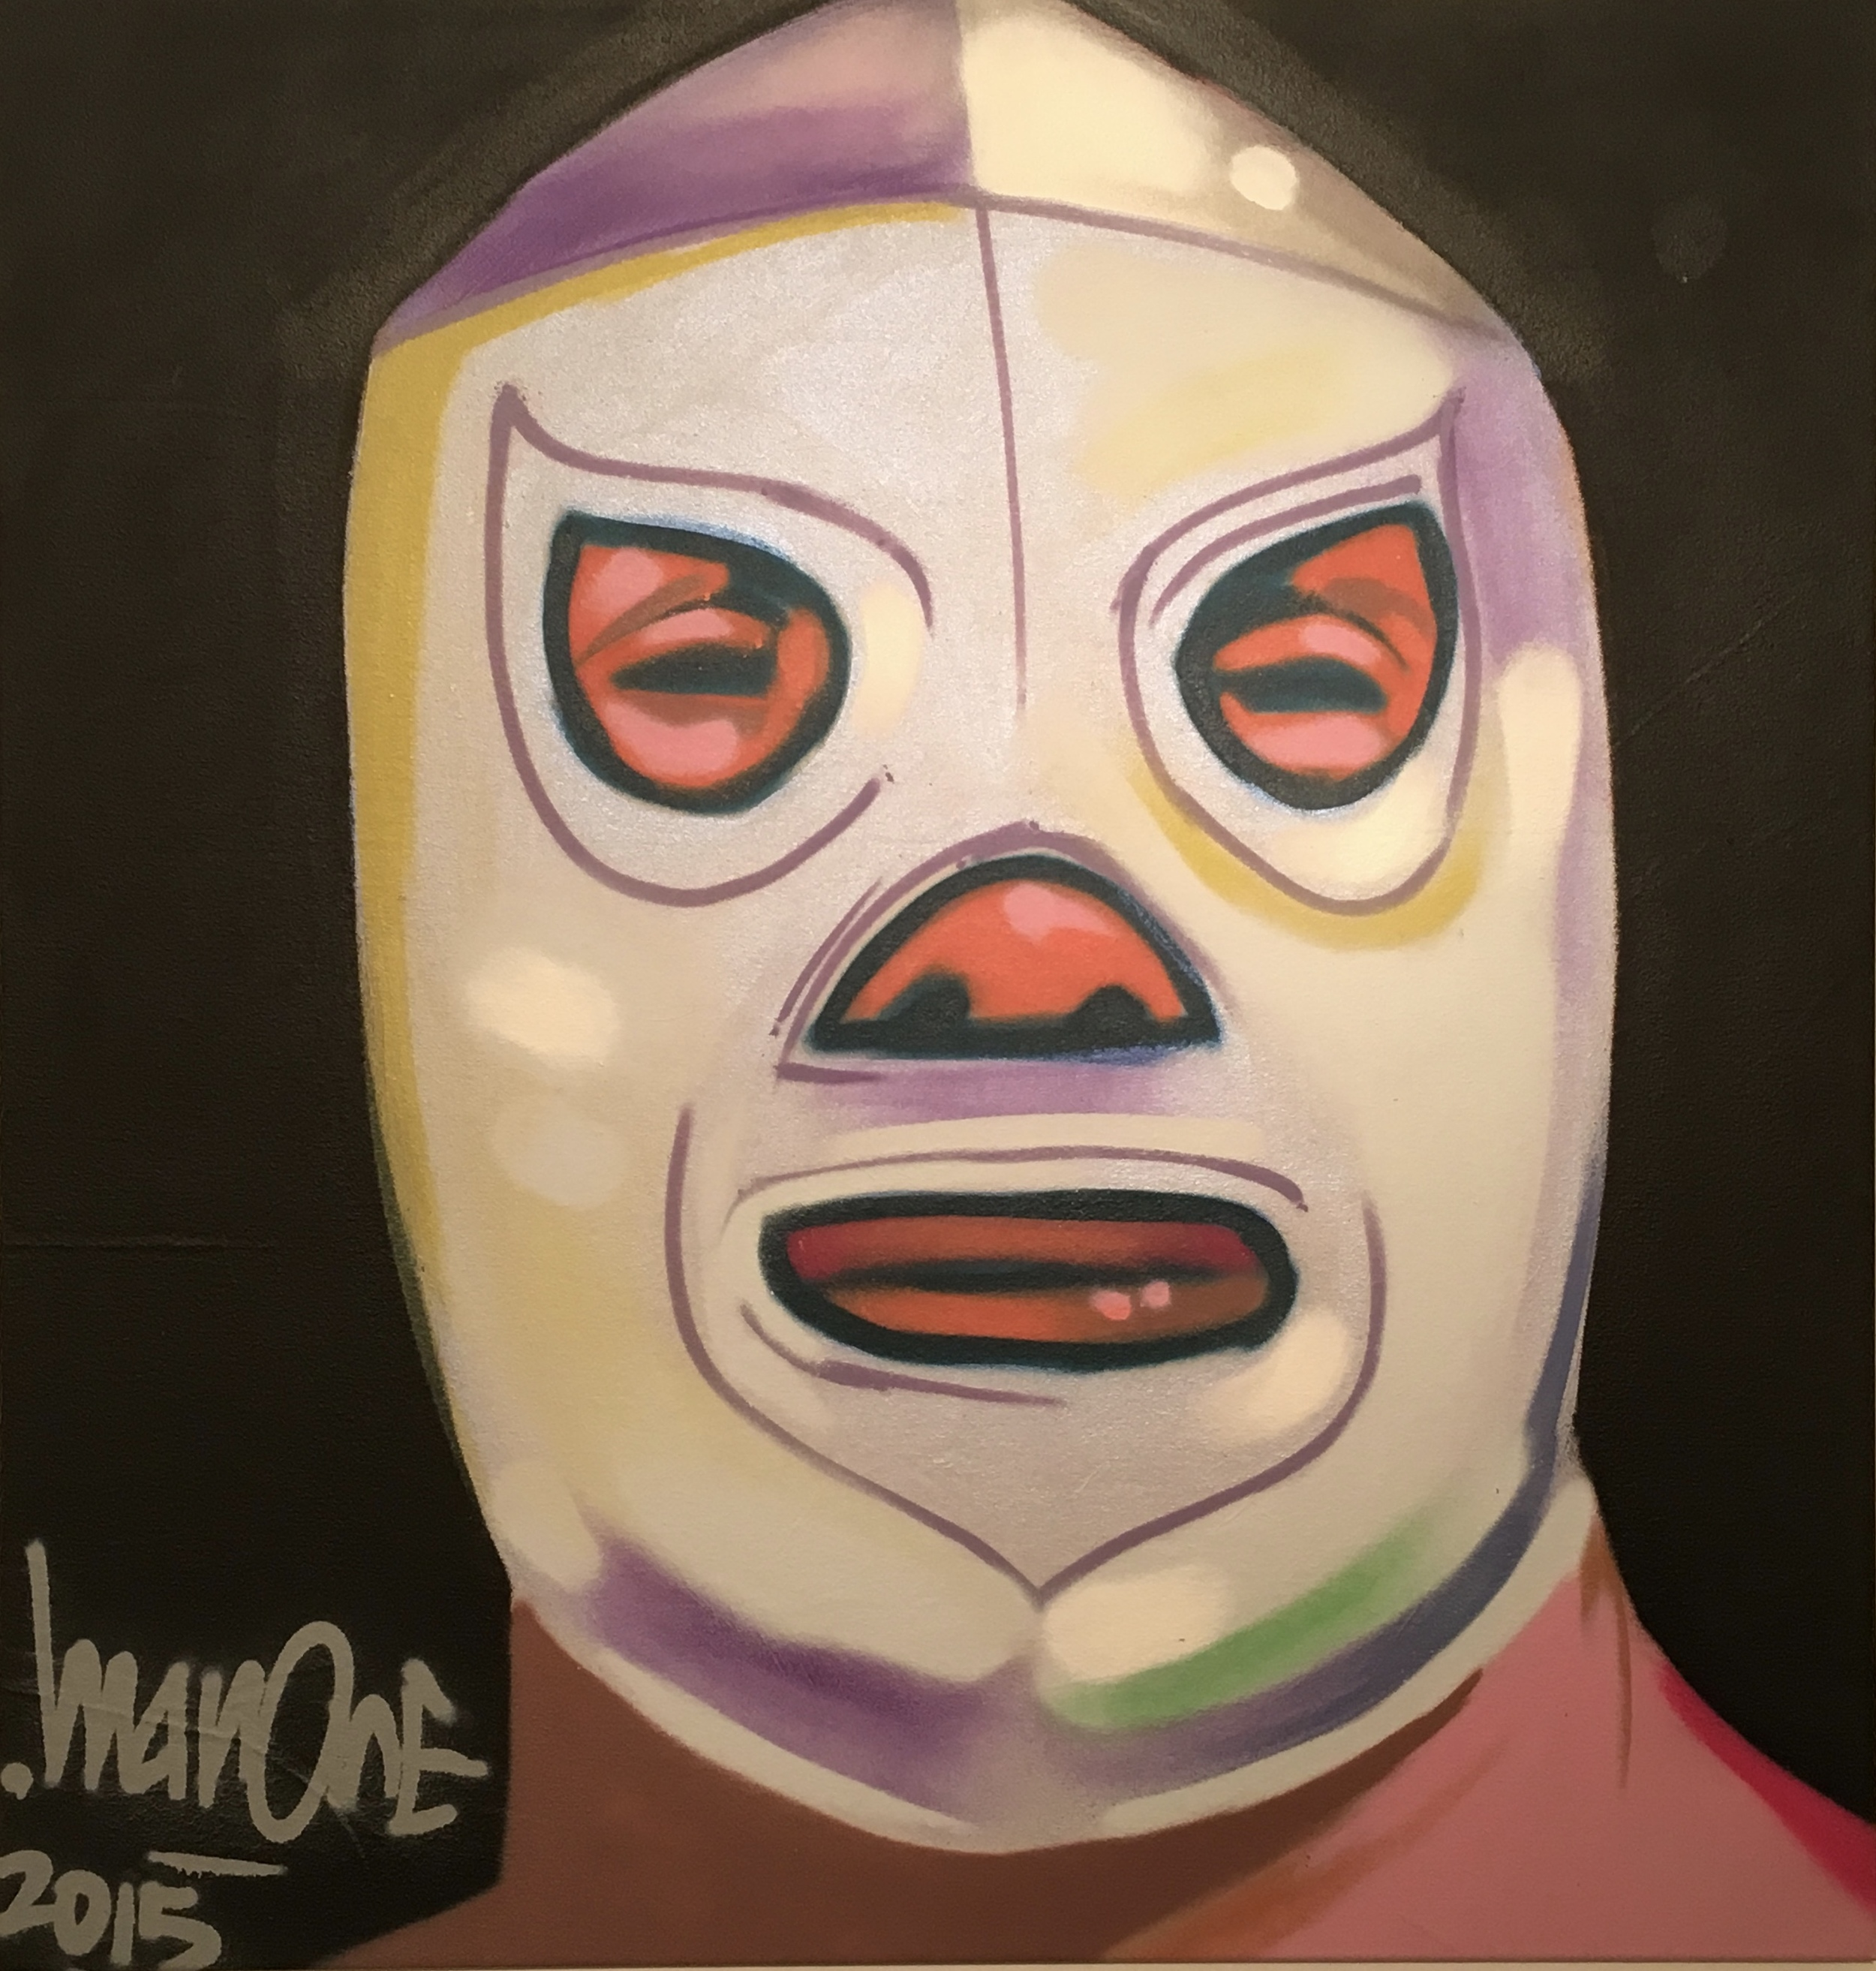 El Santo by Man One